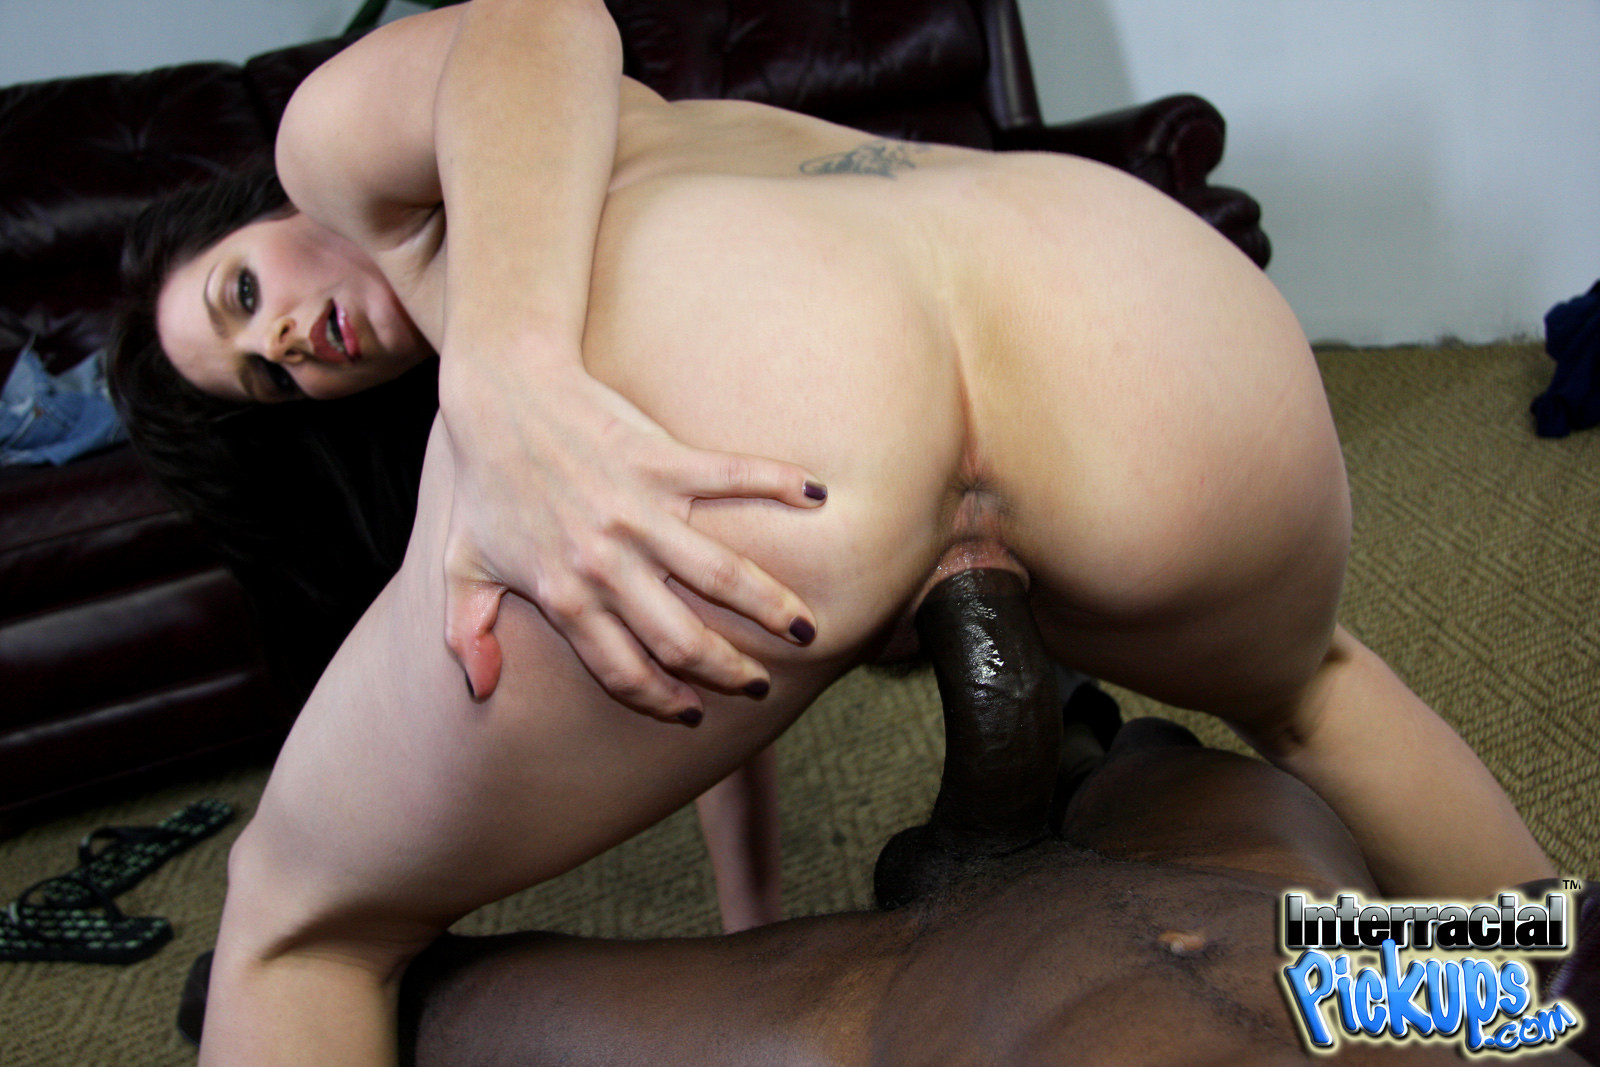 Bobbi starr sex are available?